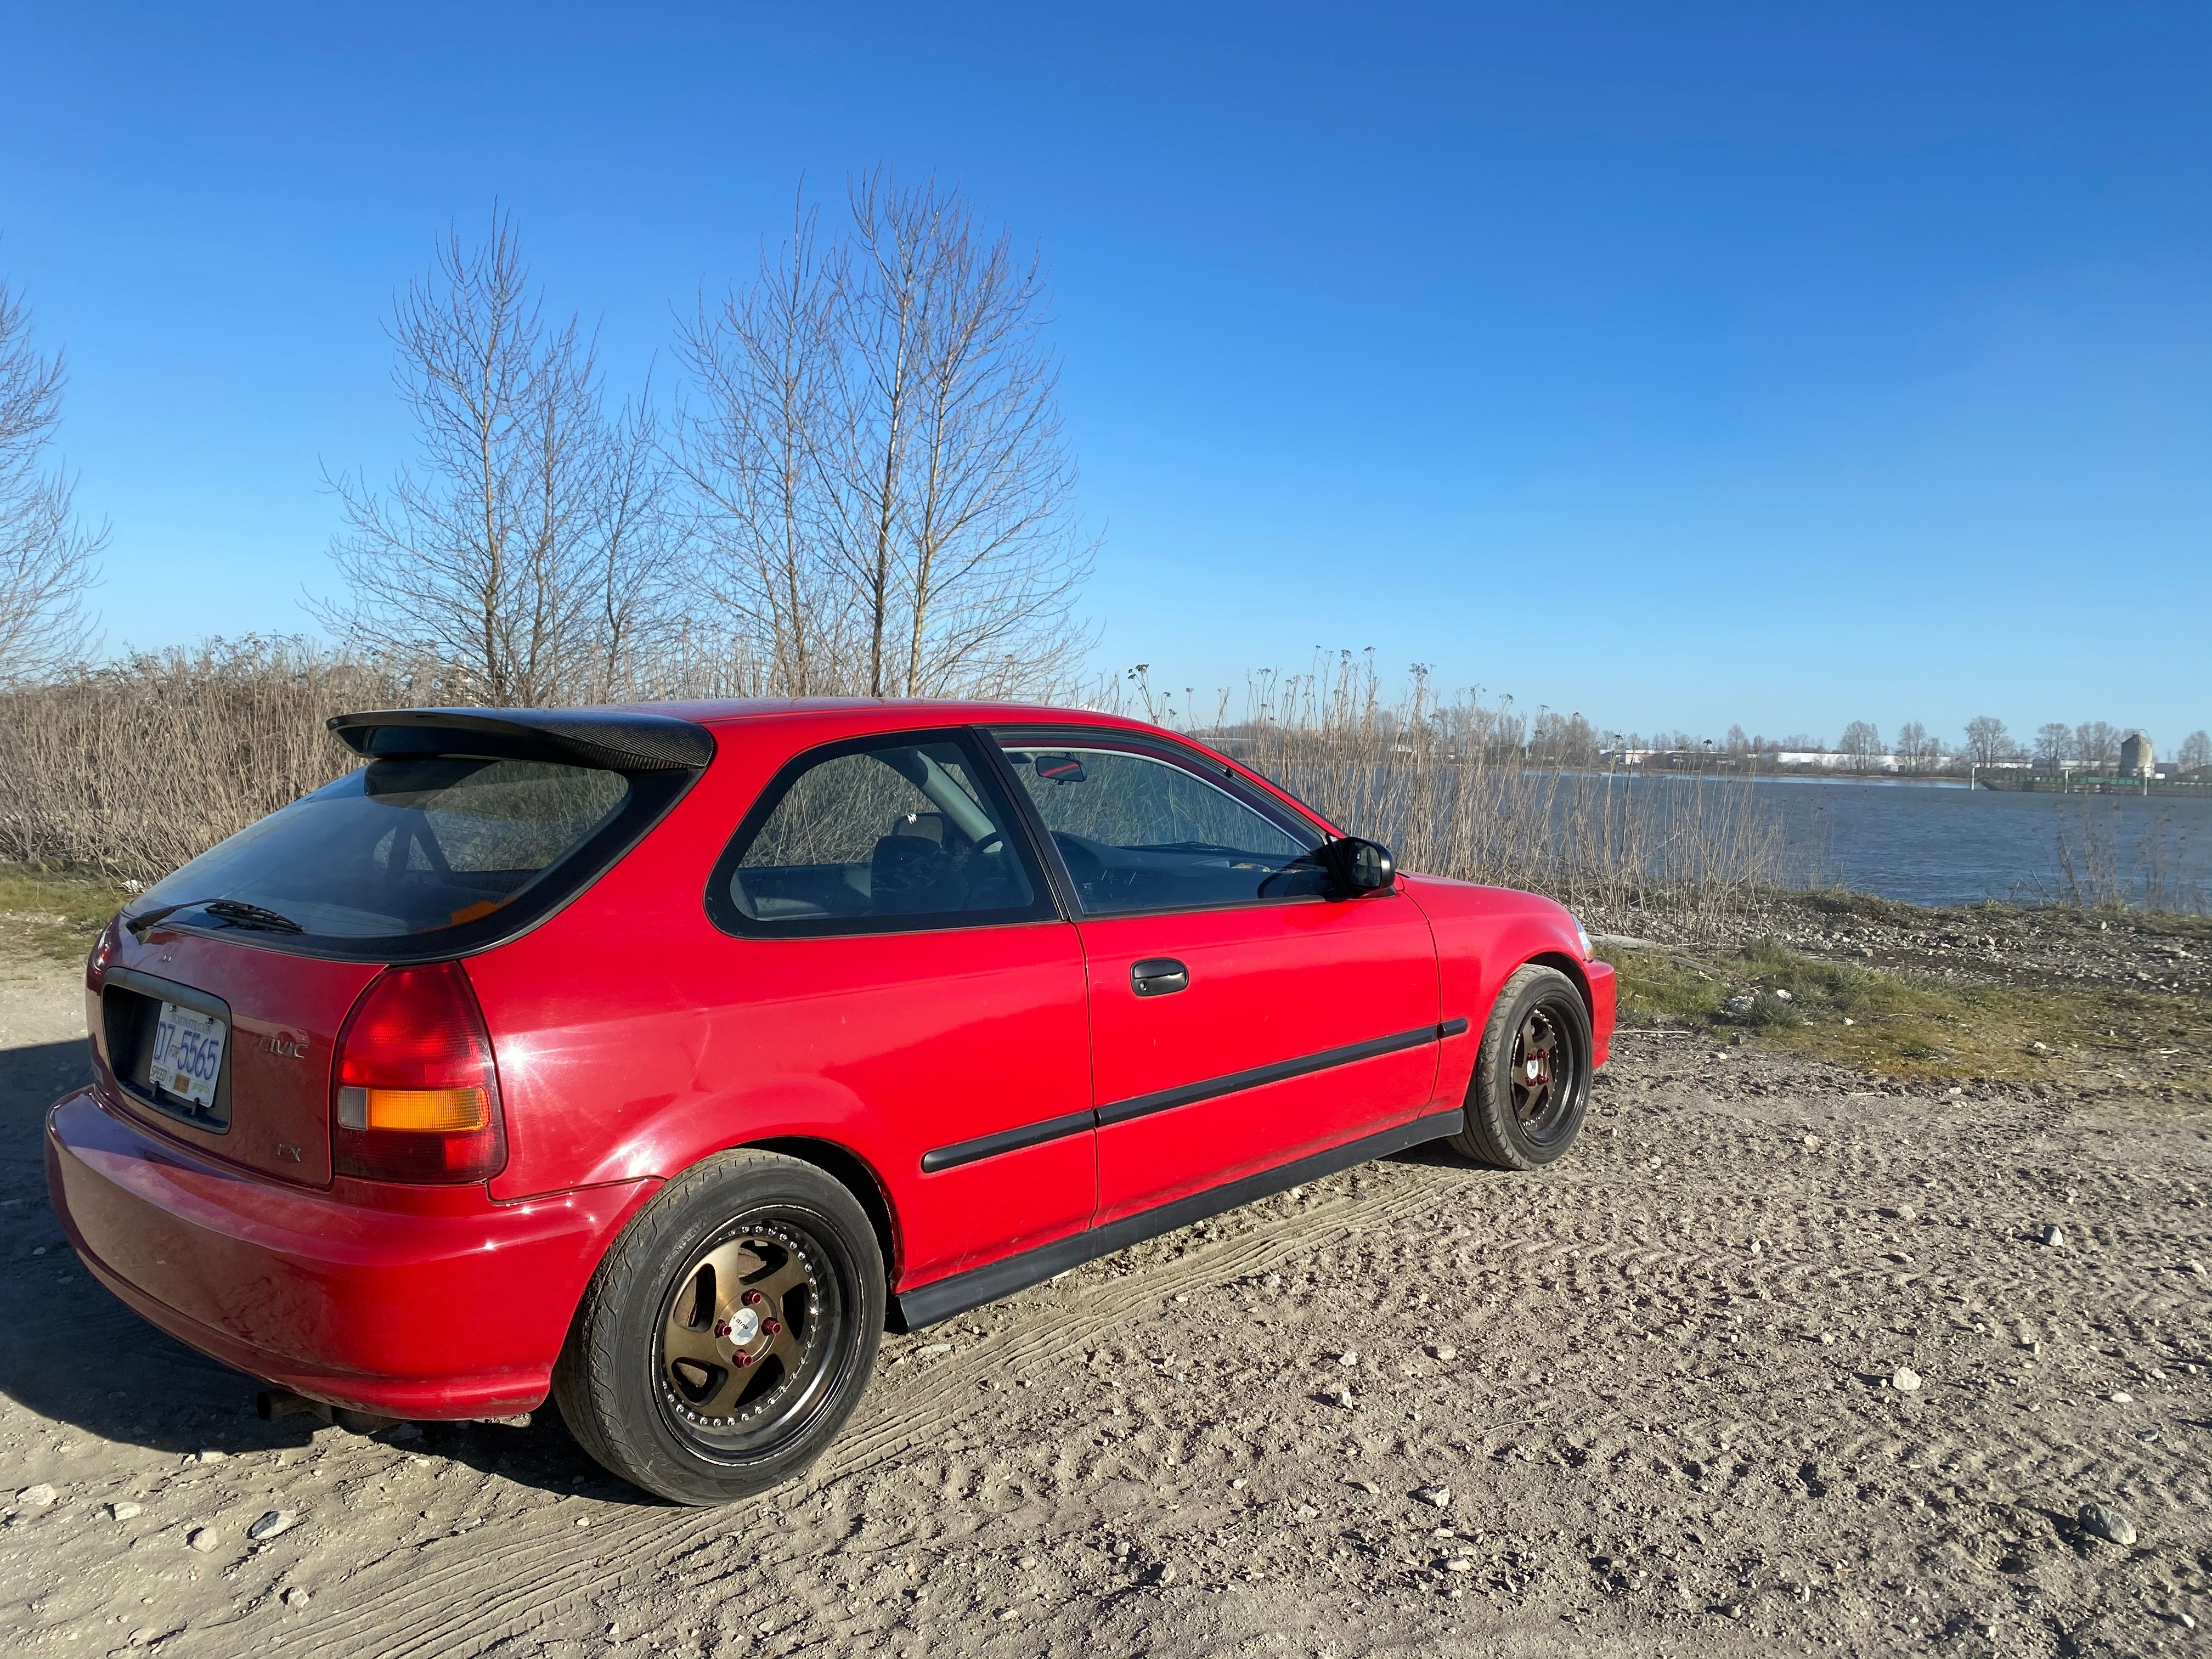 1998 Honda Civic Hatchback Integra Type R Swap B18c5 200hp Need For Speed Garage Dealership In Surrey